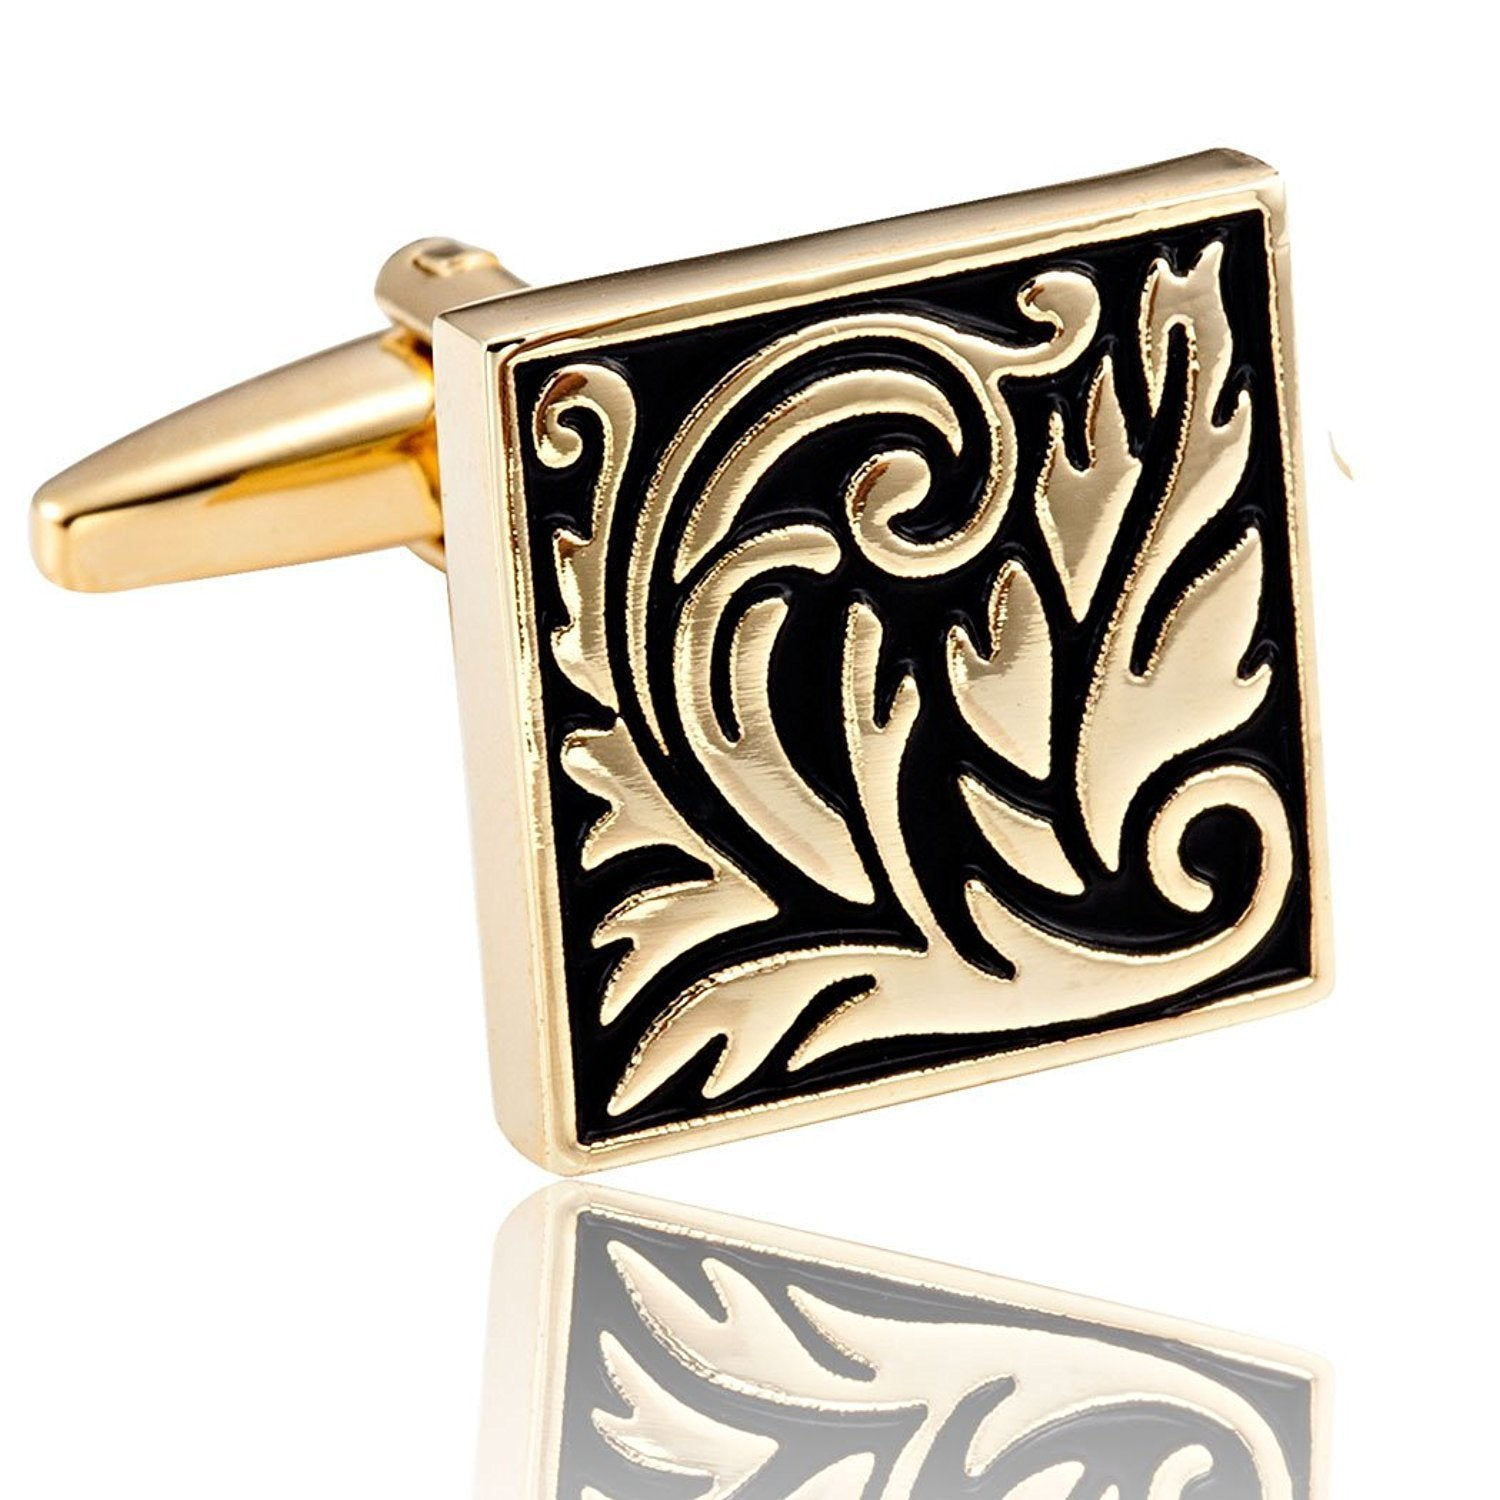 Ornate Floral Scroll Cufflinks - Gold & Black IP Stainless Steel